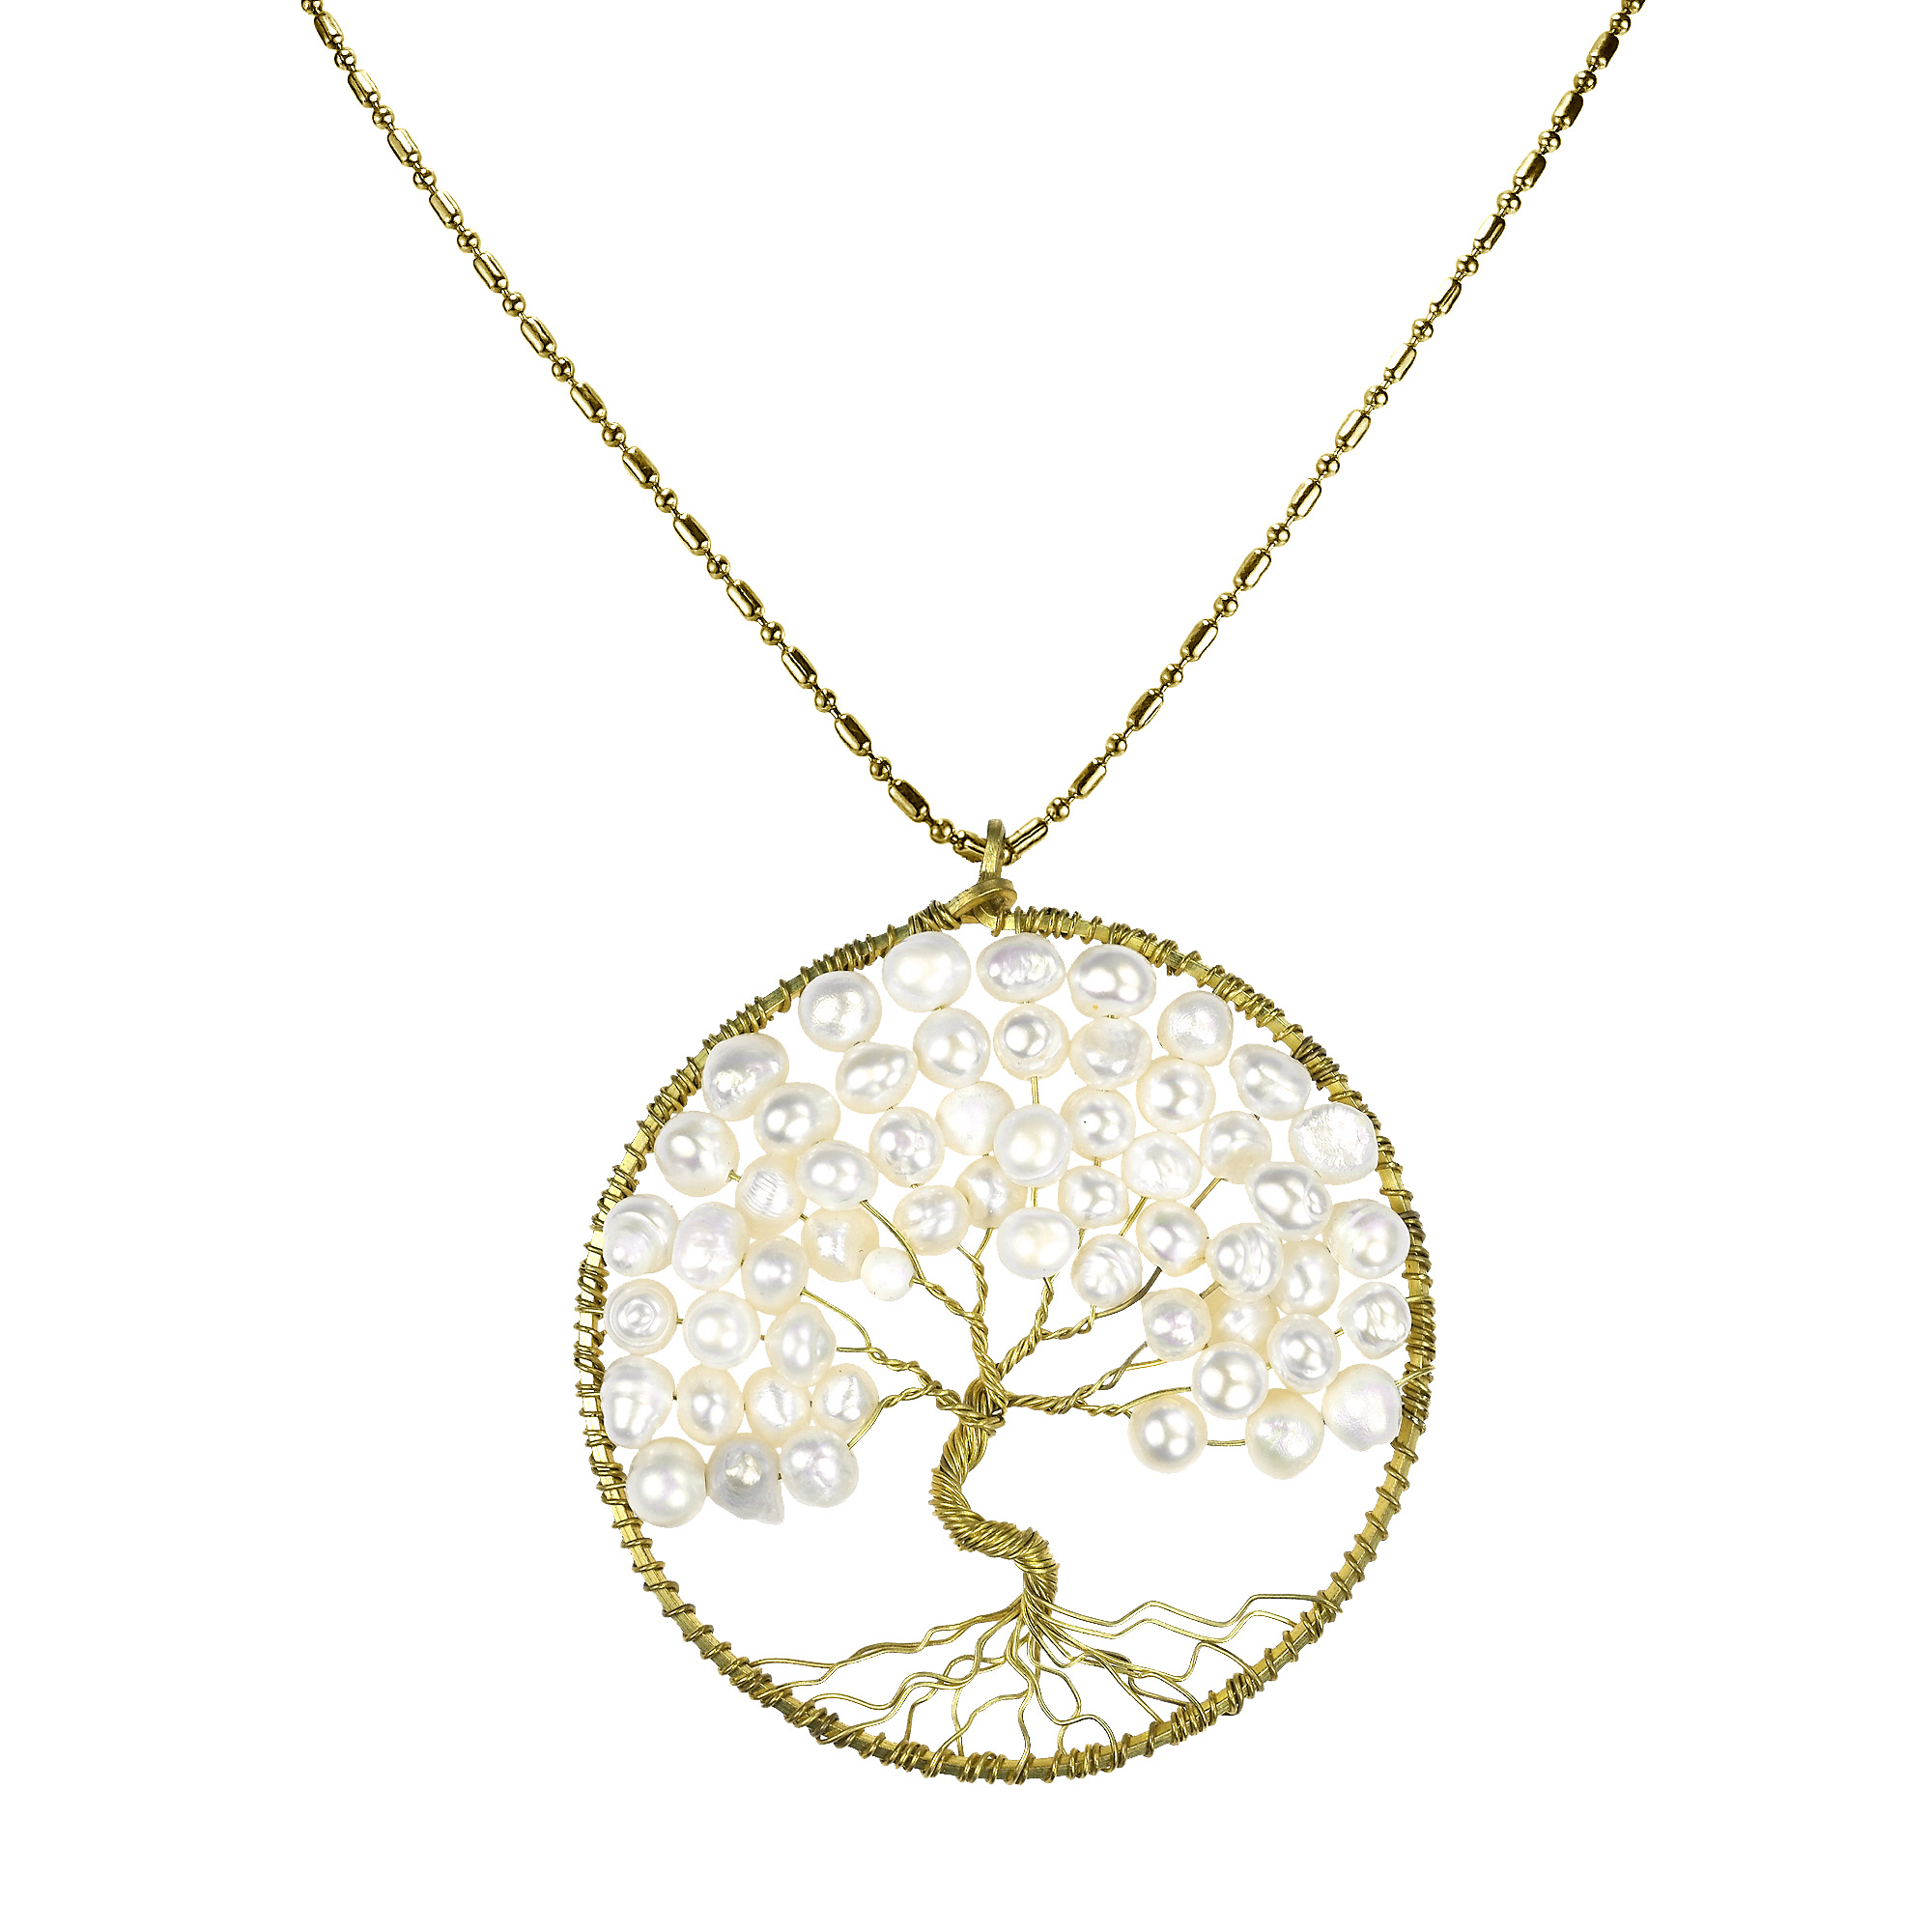 White pearl eternal tree of life brass long necklace aeravida local aeravida artisan kannika handcrafted this breathtaking necklace this unique necklace features the symbolic tree of life made with natural gemstones aloadofball Choice Image